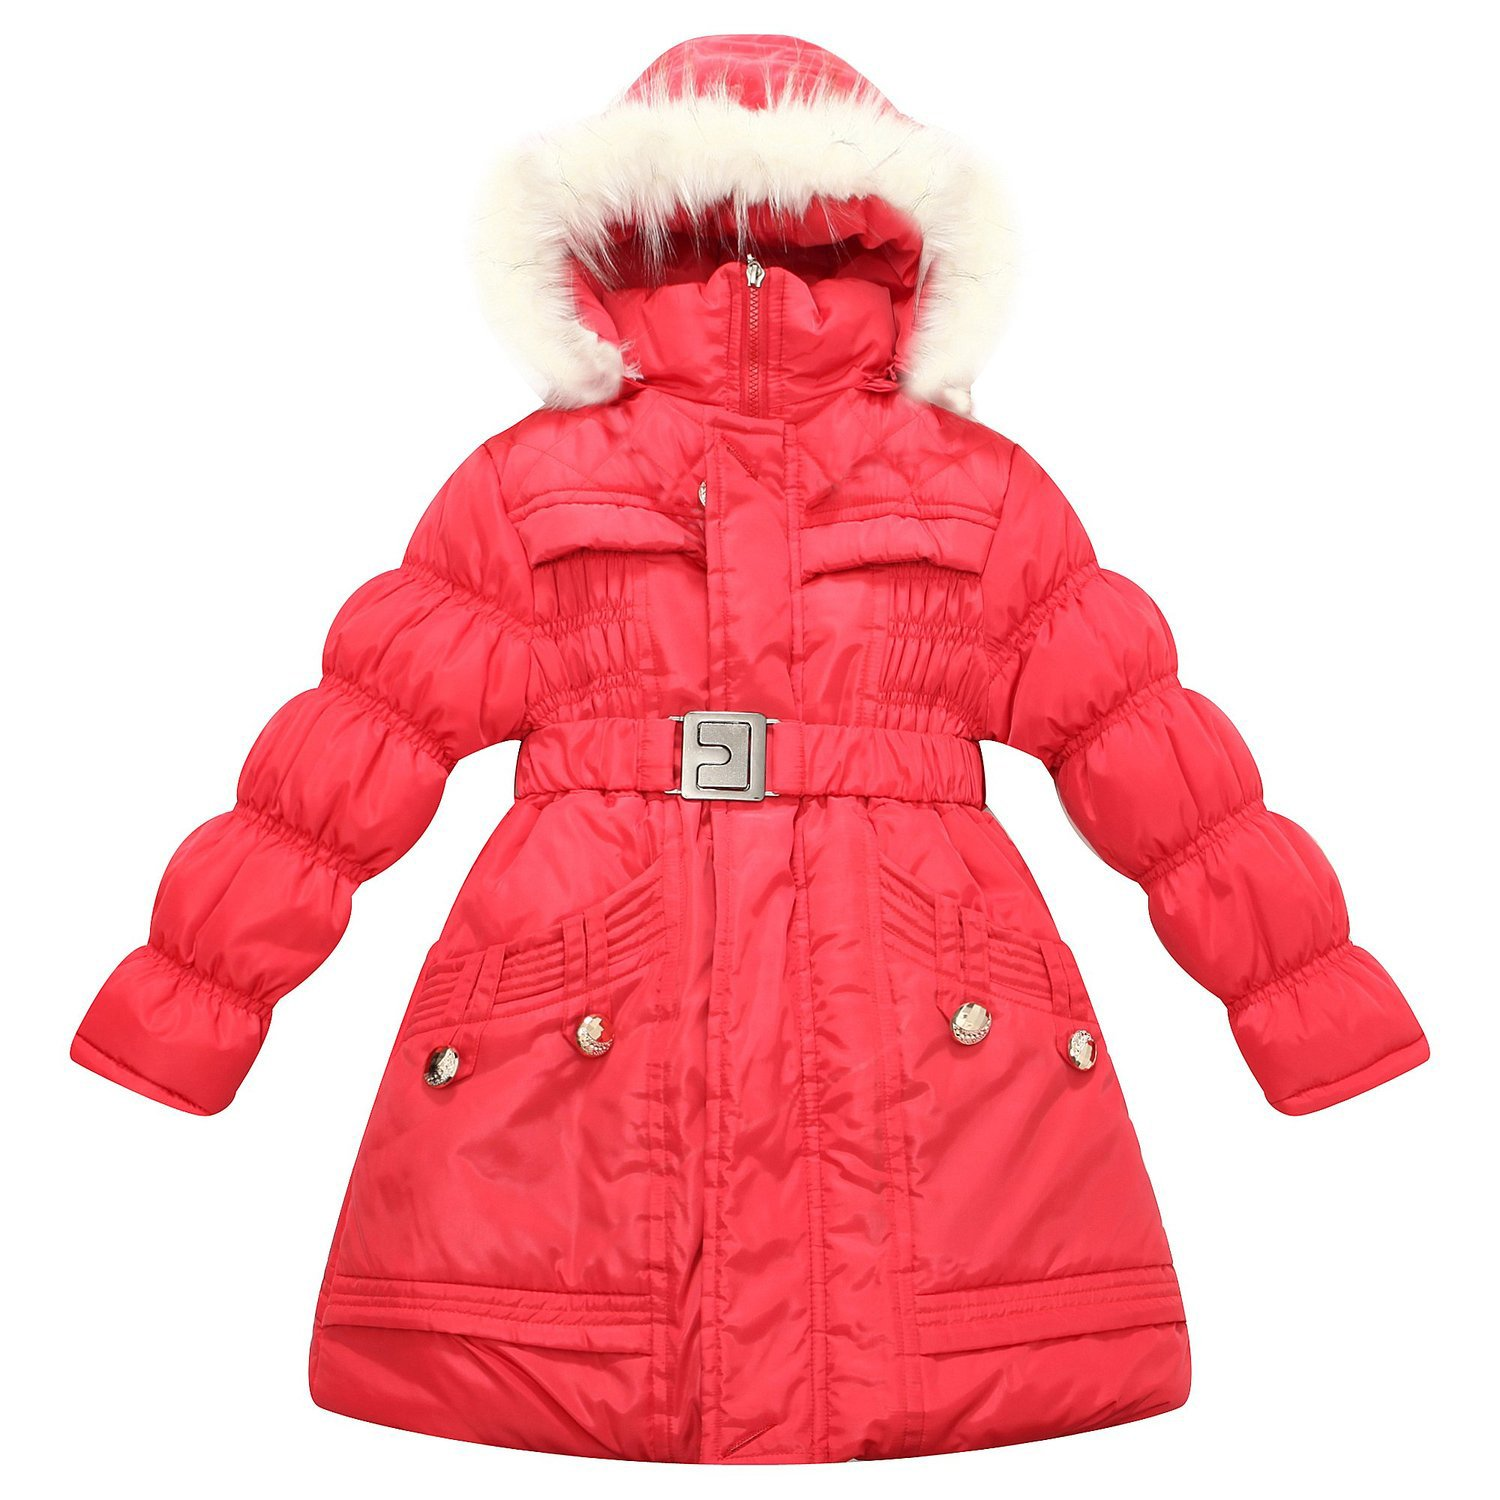 Richie House Girls' Padding Jacket with Hood and Fake Fur Lining RH1342